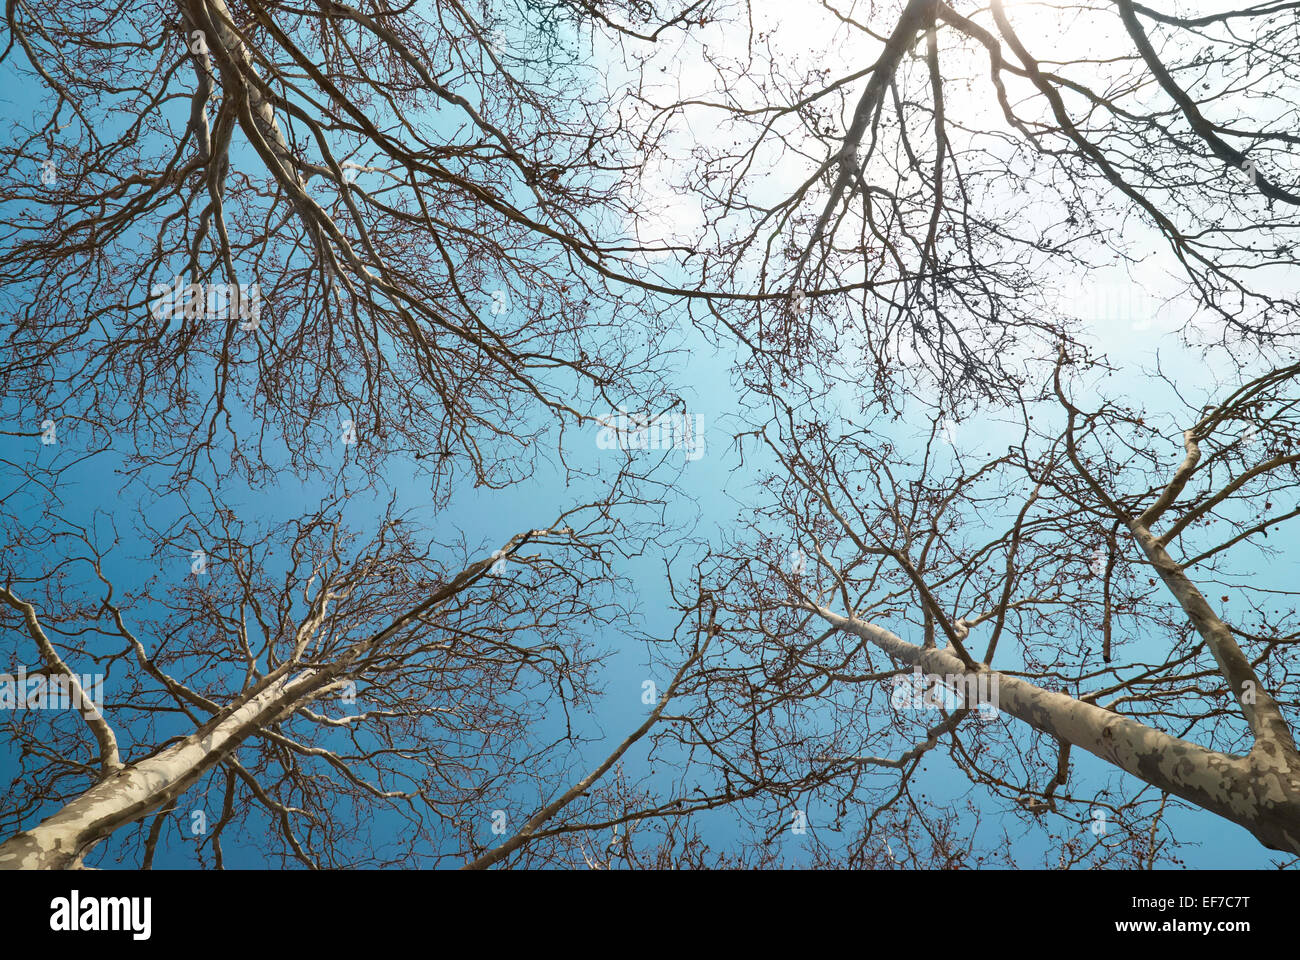 Spring treetops with blue sky and clouds Stock Photo